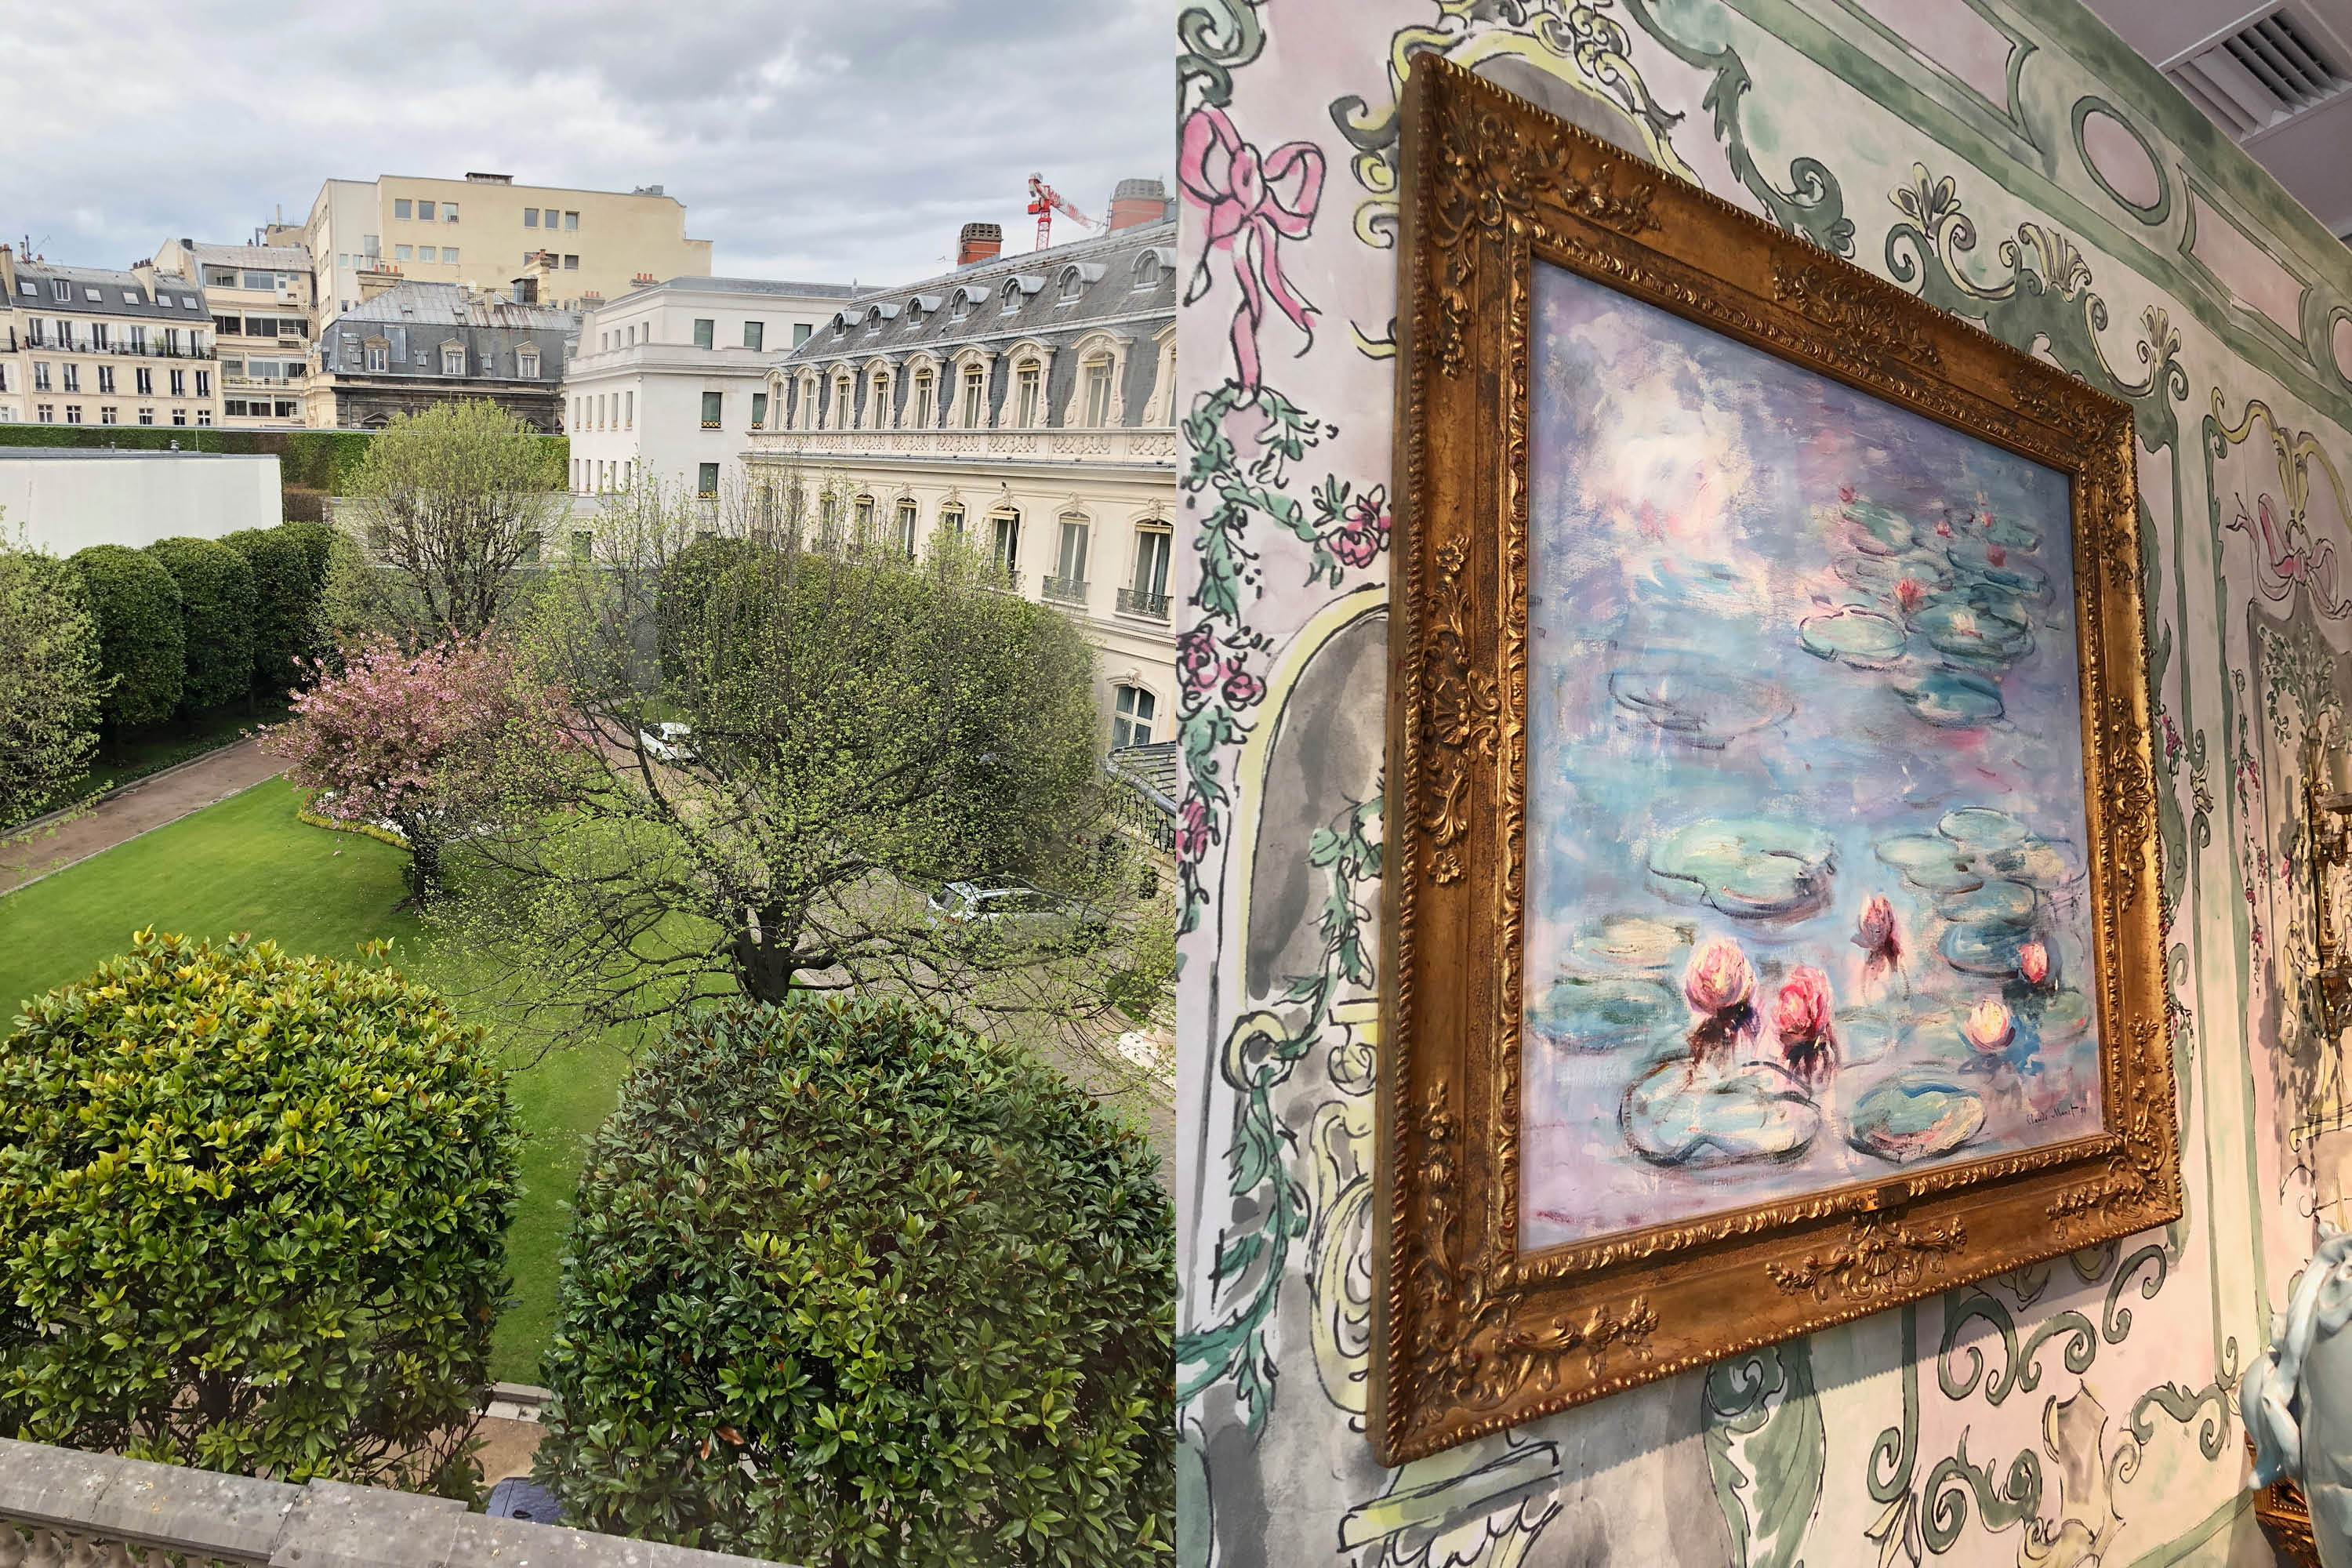 Artcurial, ritz, auction house, Paris, Monet